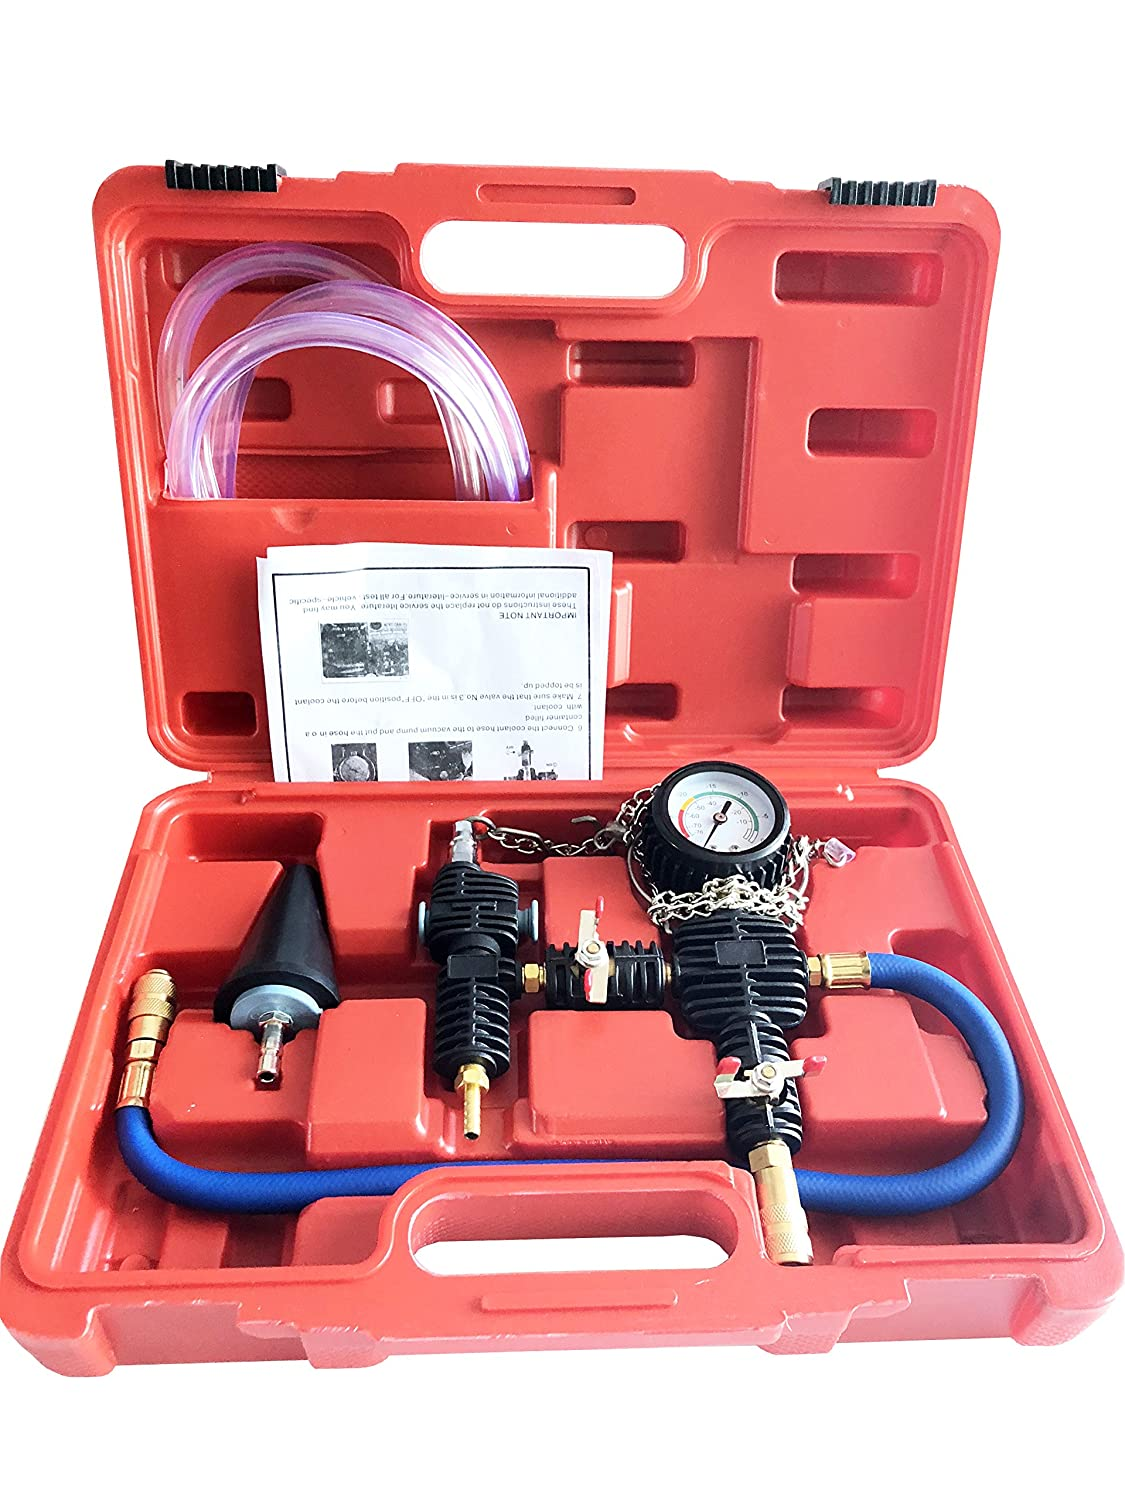 GooMeng System Vacuum Purge & Coolant Refill Kit with Carrying Case for Car SUV Van Truck Cooler